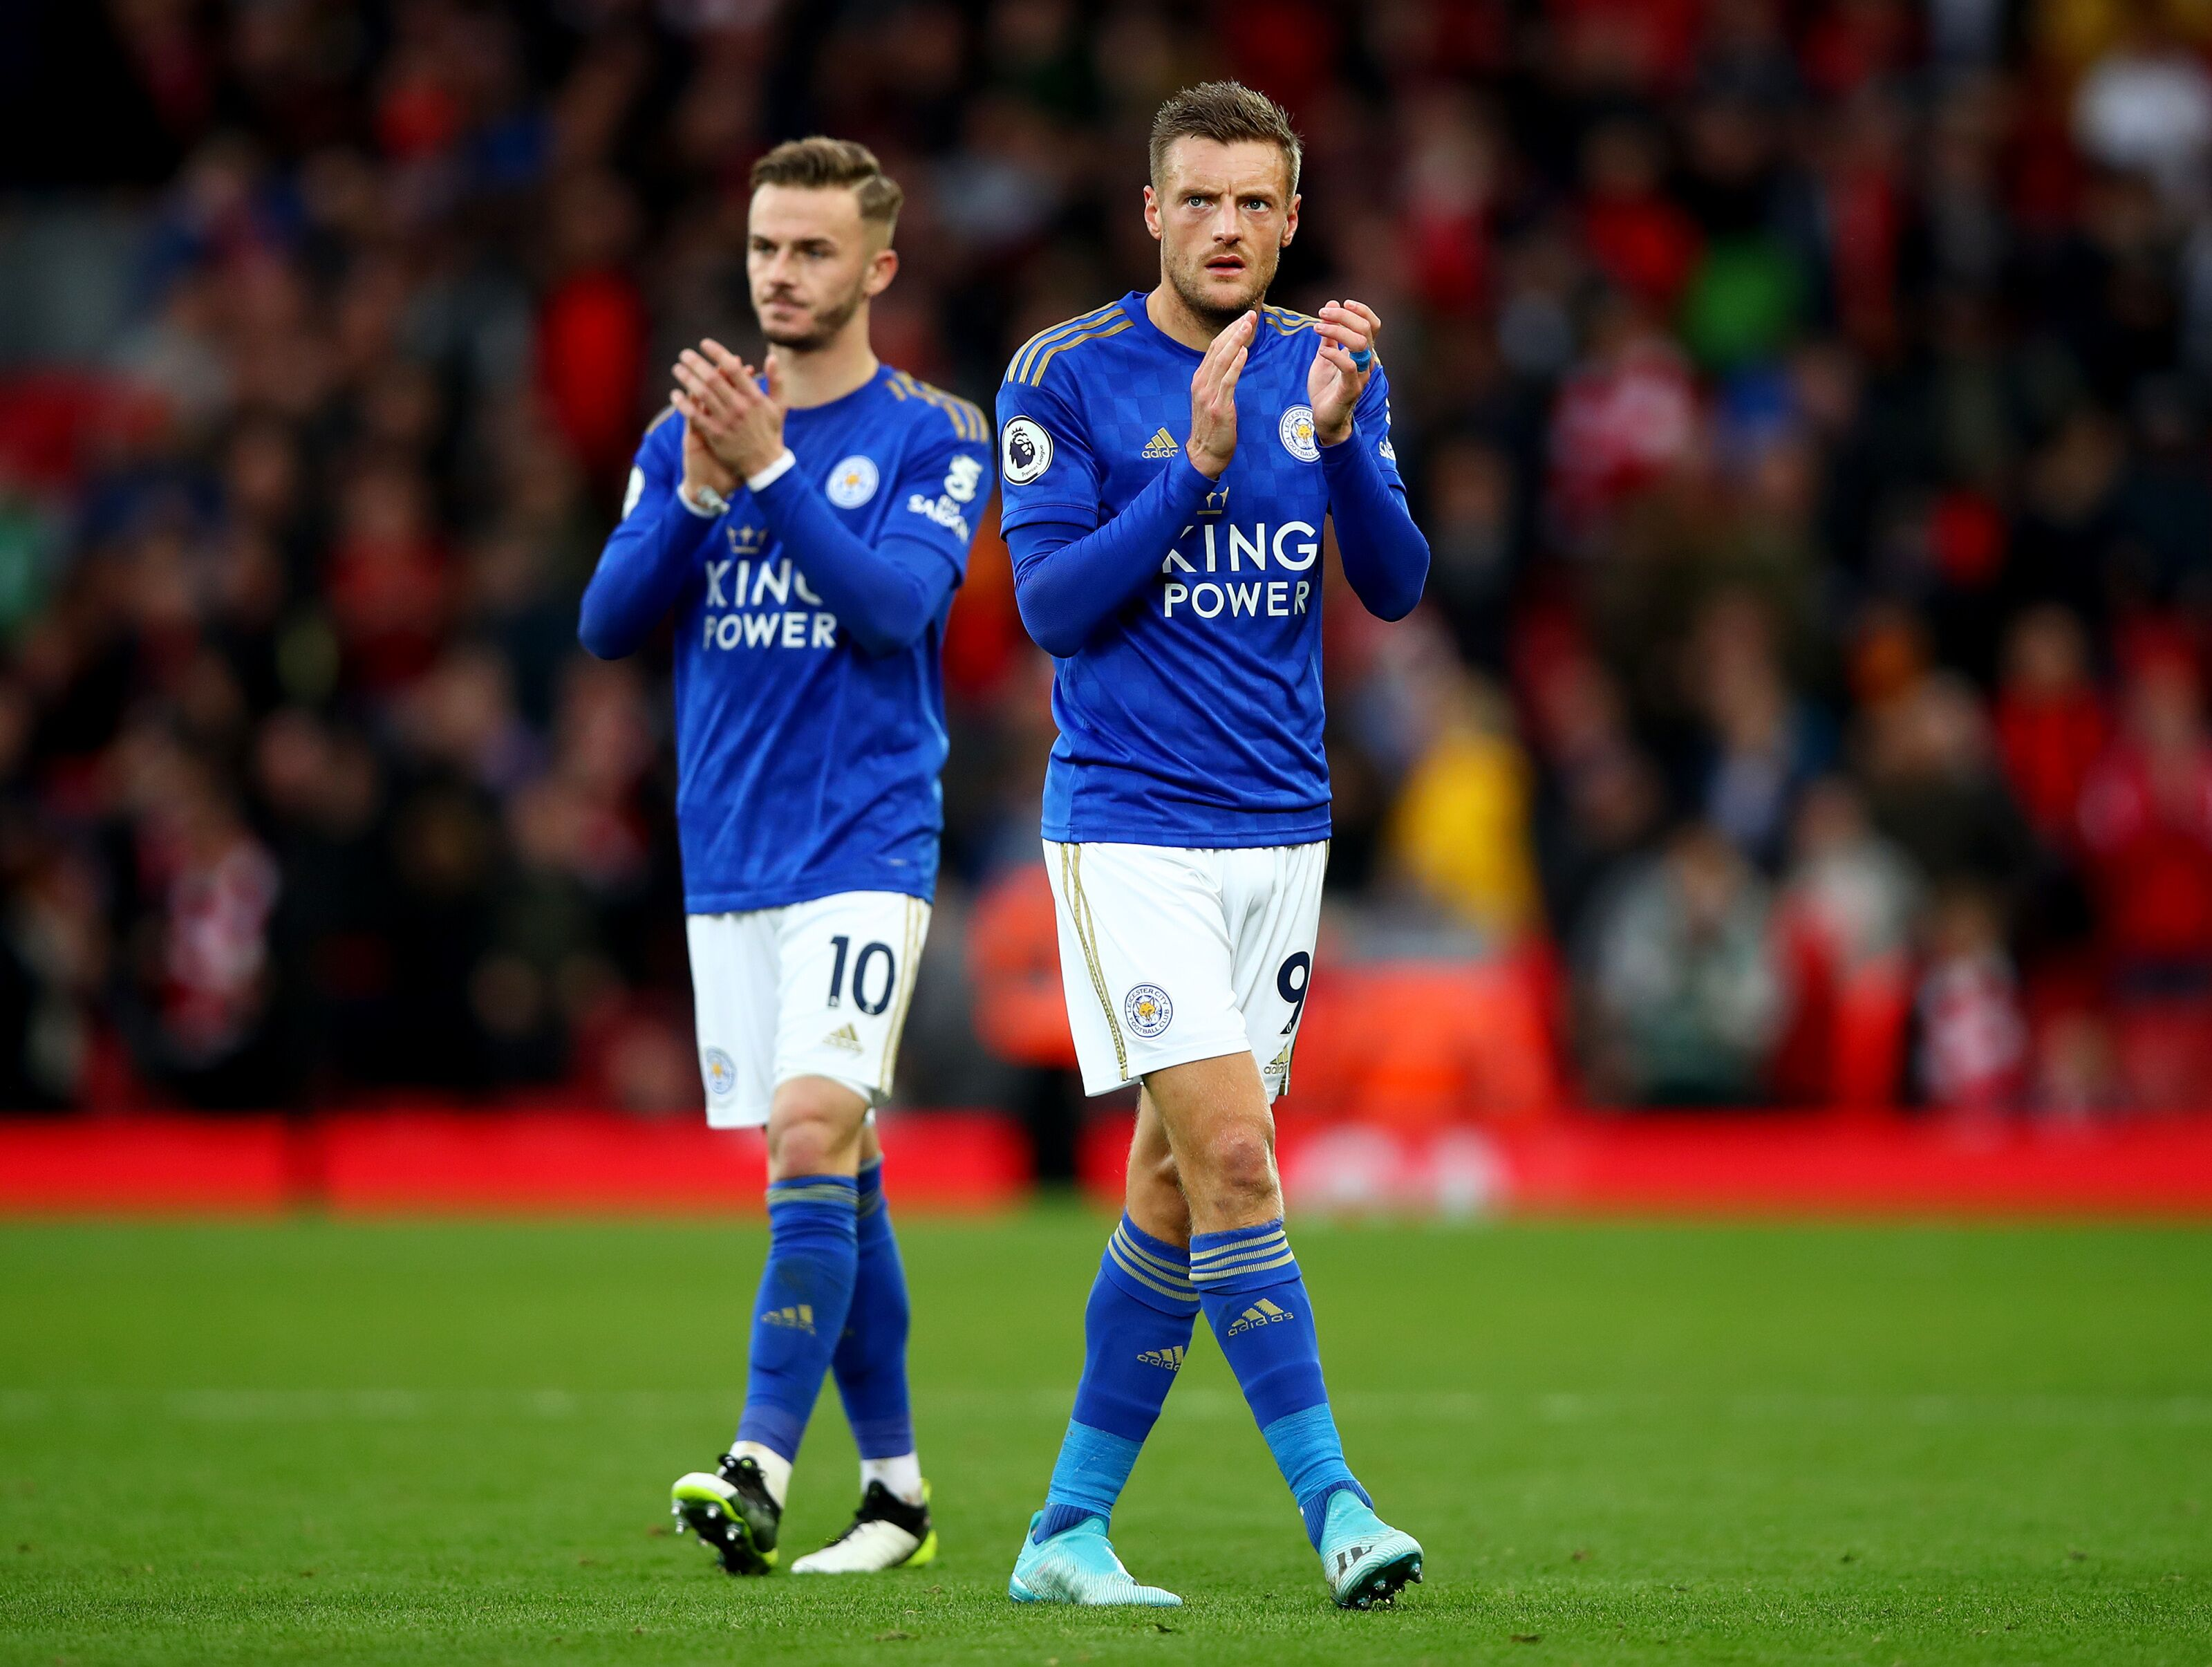 TEAM NEWS: Leicester City injuries, player availability for Burnley